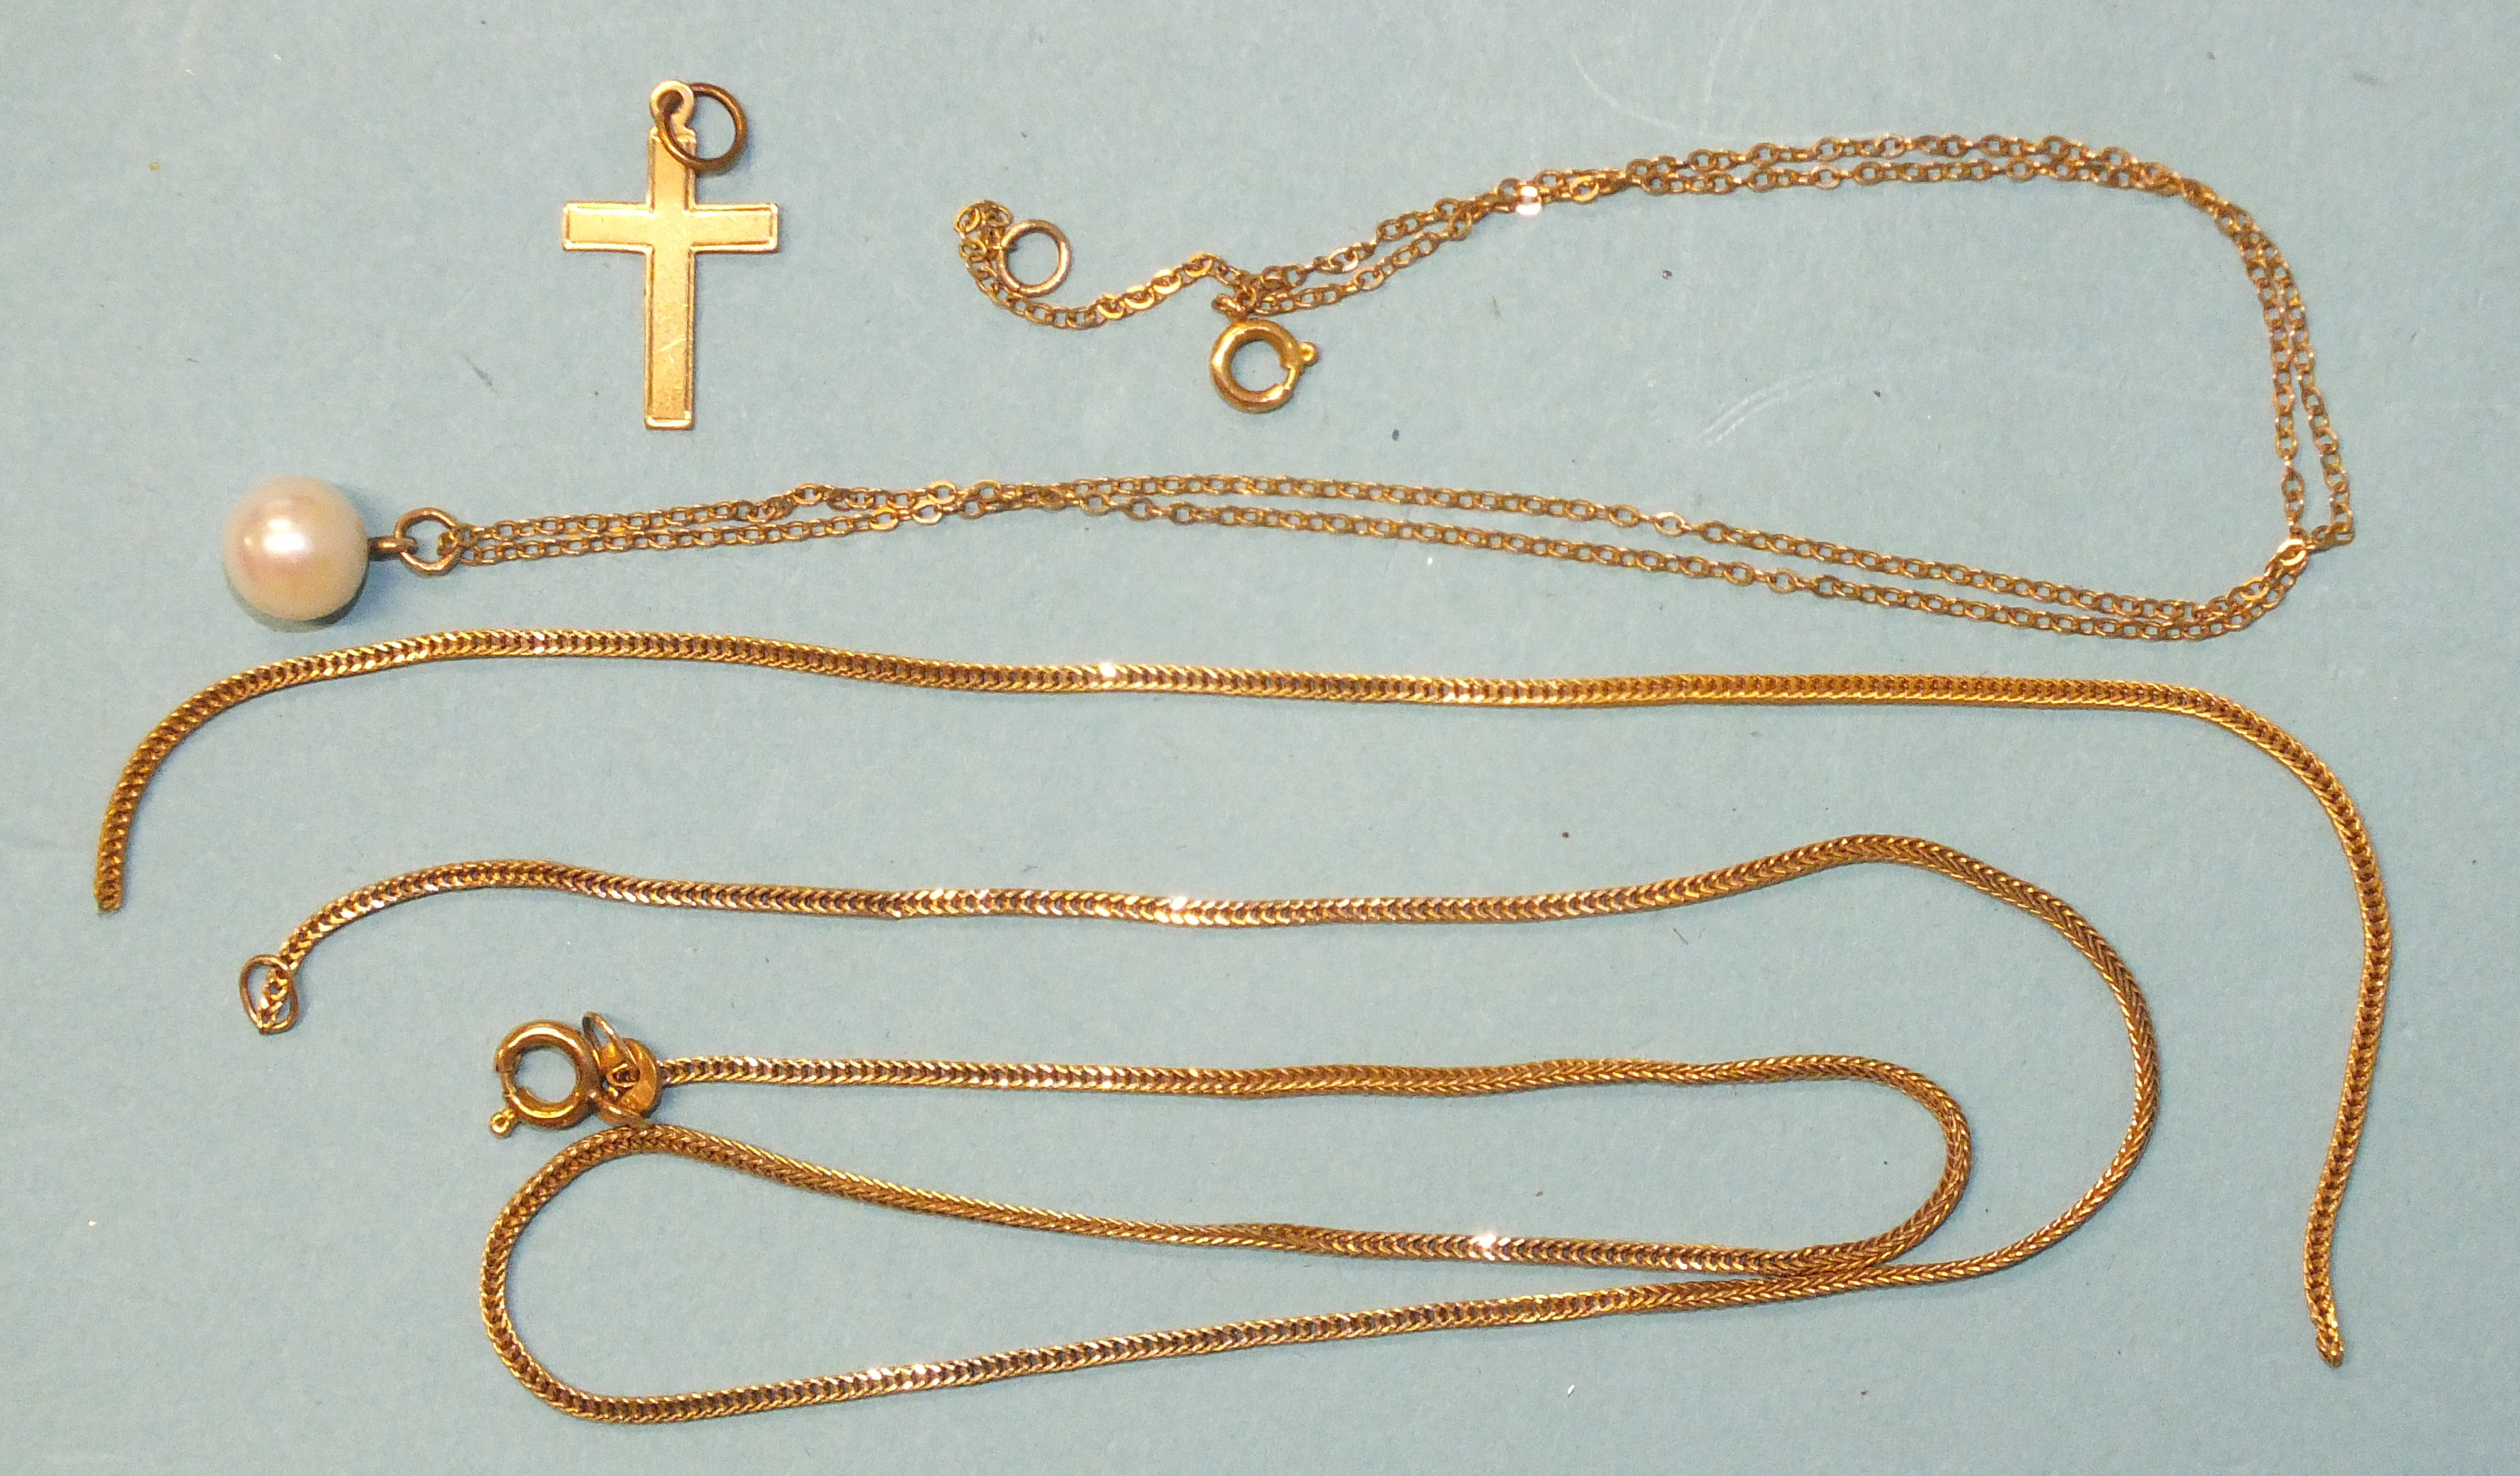 A pearl pendant, (beads 8mm approximately), on 40cm 9ct gold chain, a 9ct gold cross pendant and a